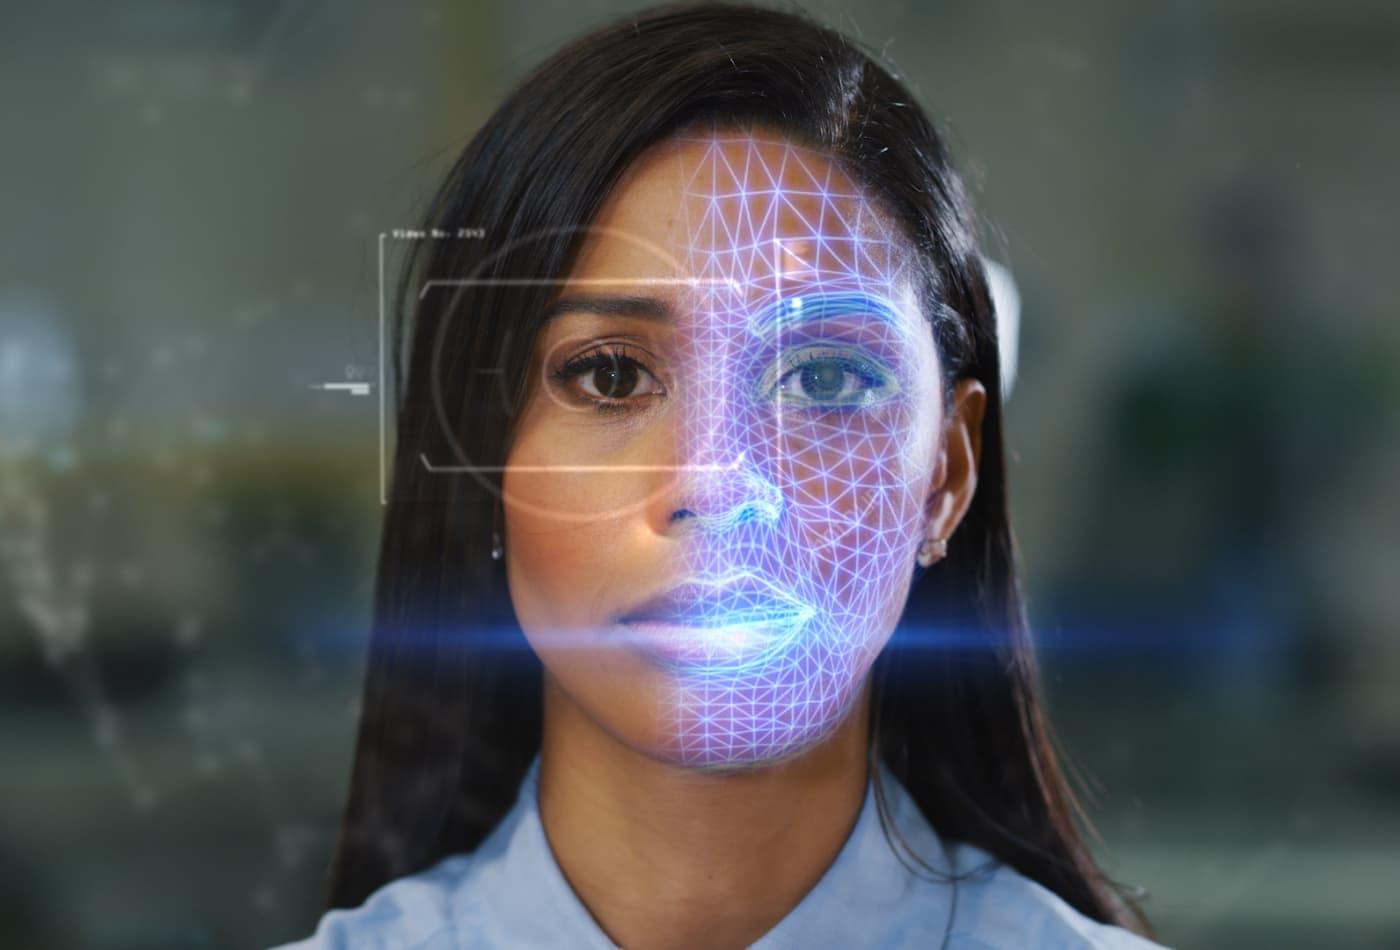 Concern is growing over police use of facial recognition